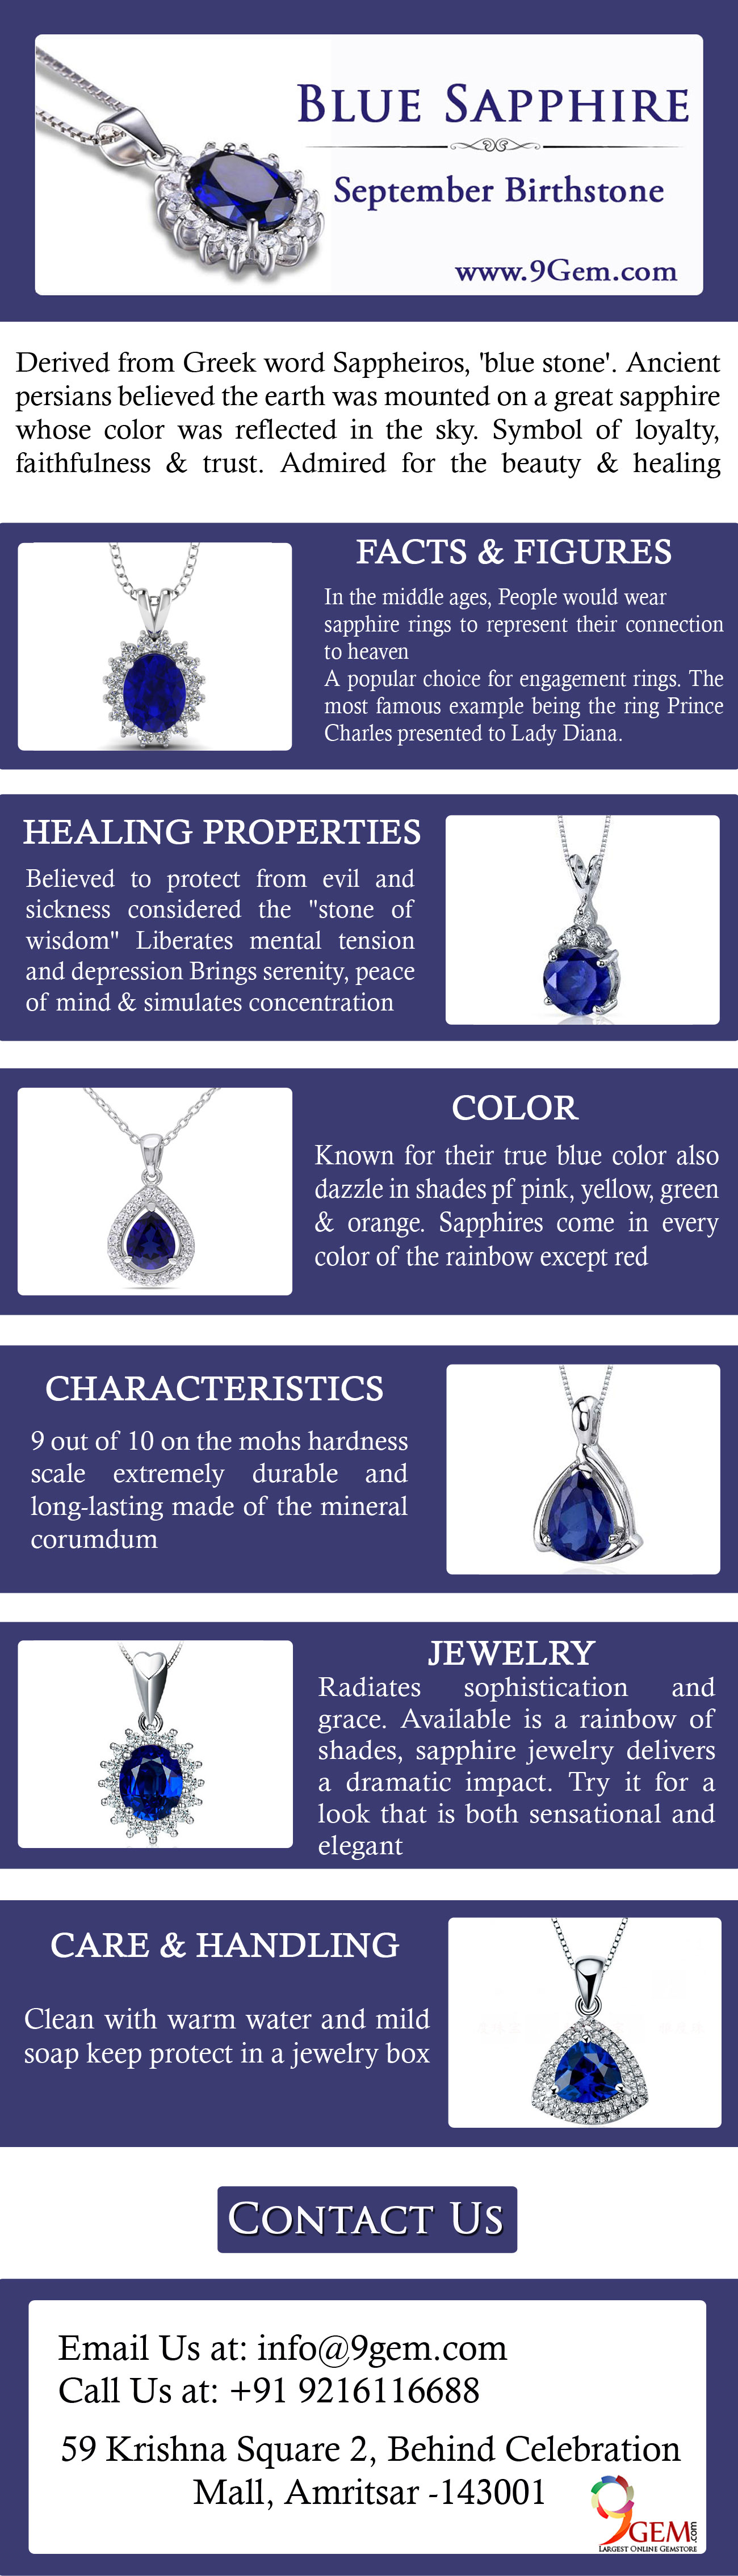 by natural tasmanian heat diamonds and no fine metal watch jewellery sapphire urges rough gemstones